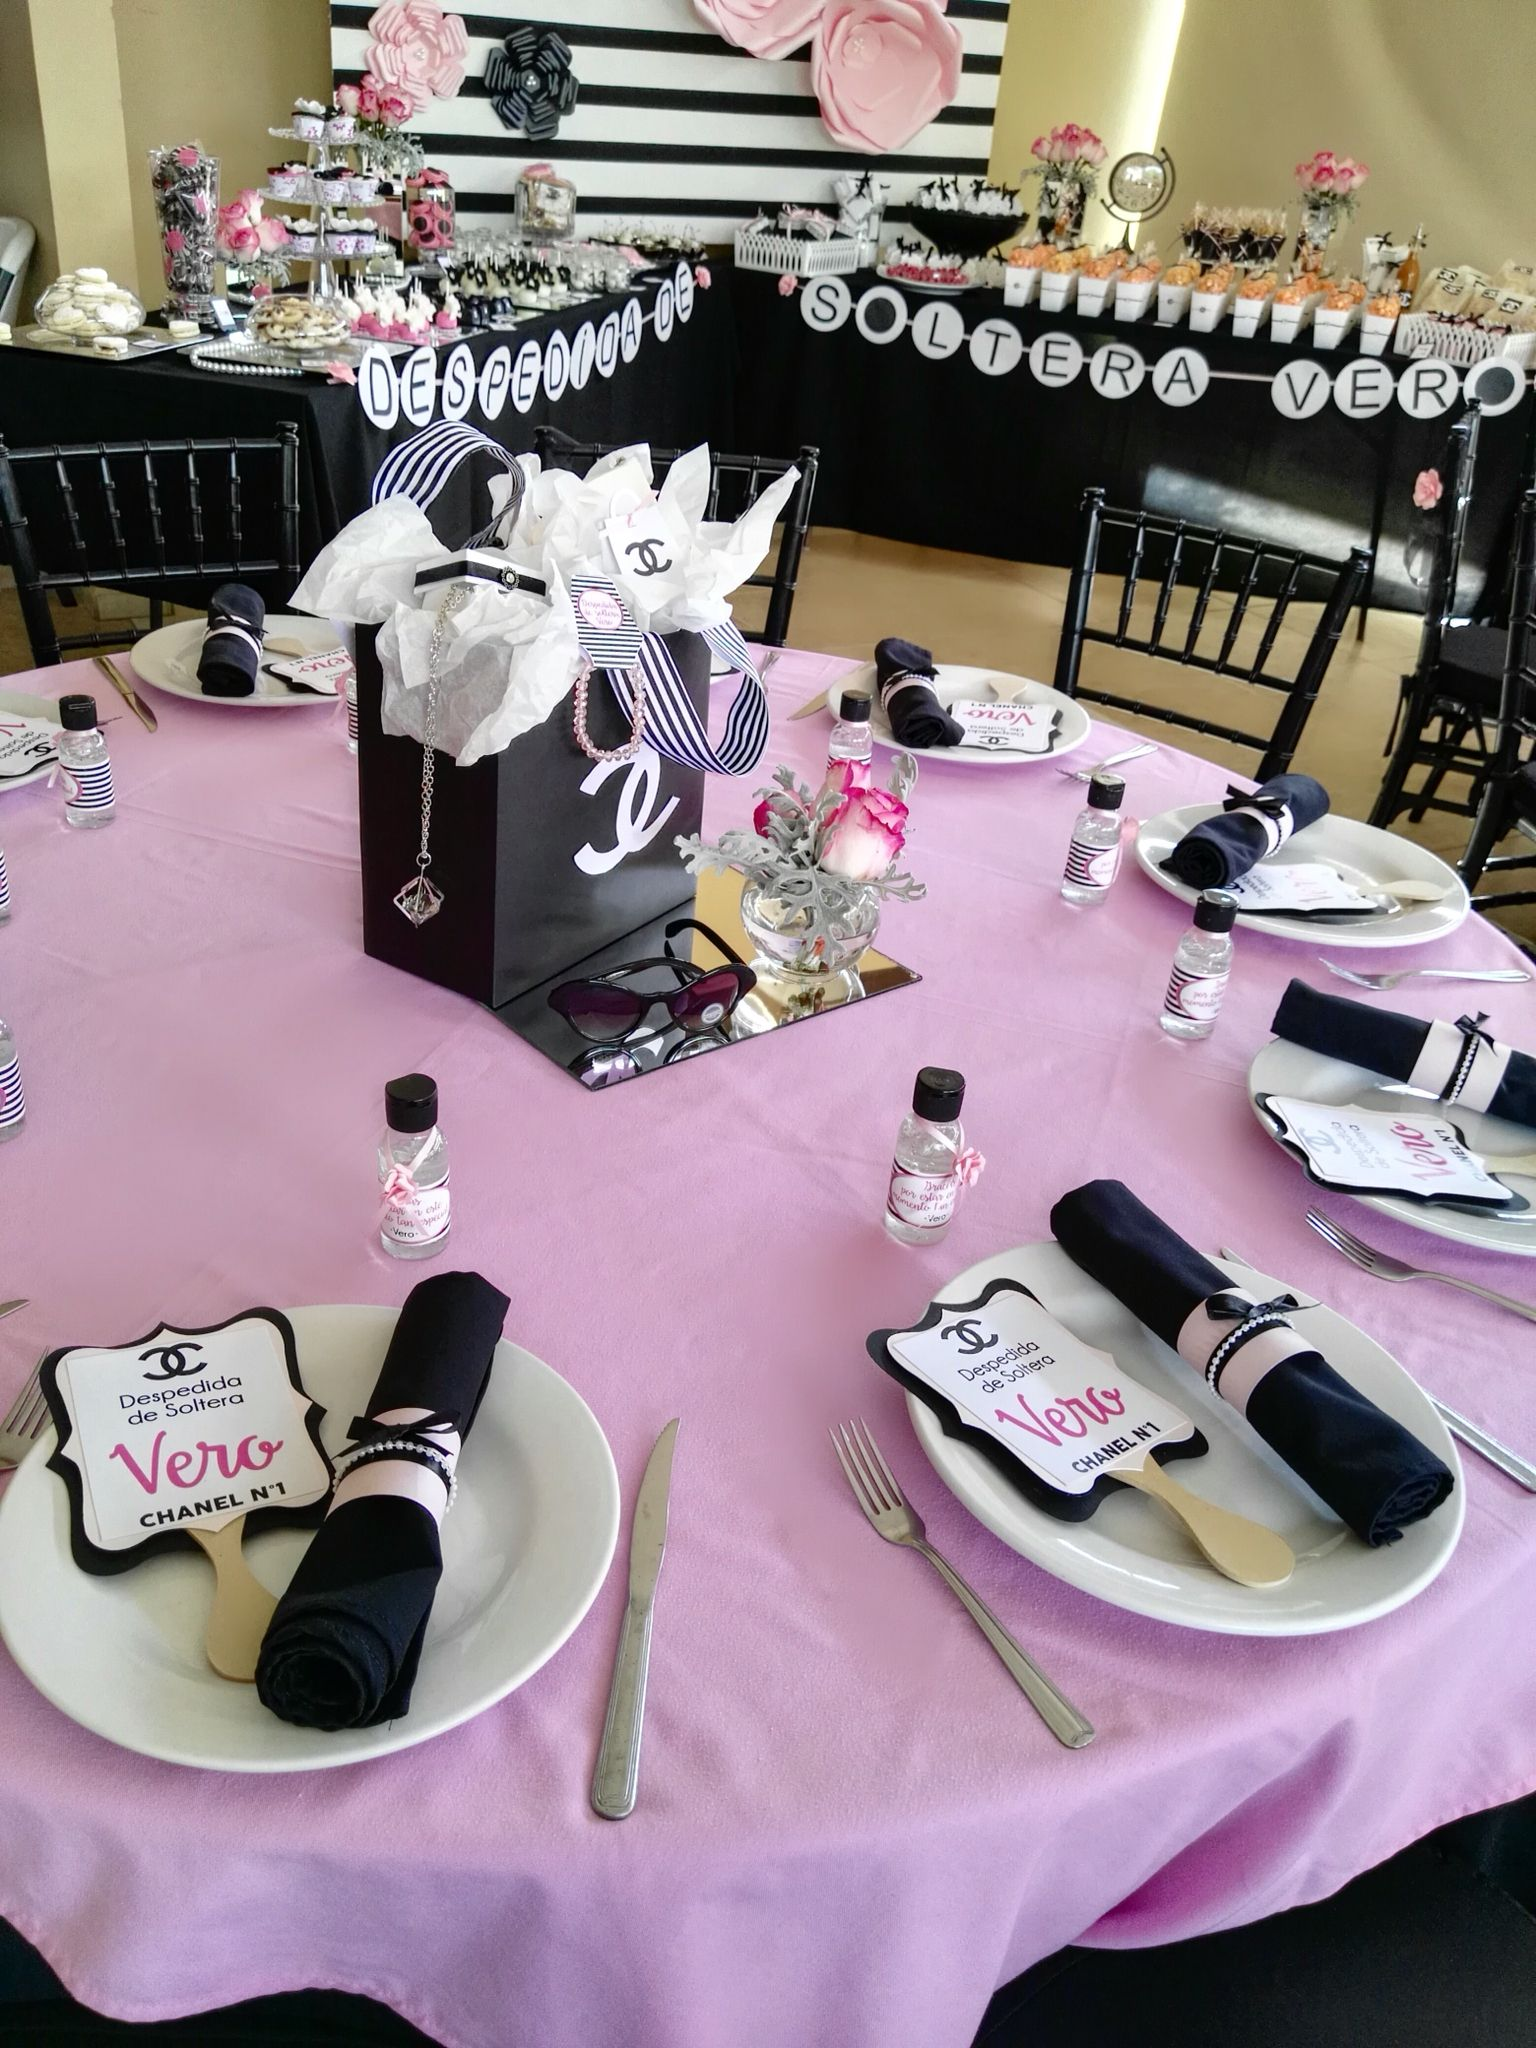 Color Negra, Chanel, Single Men, Centerpieces, White People, Black People,